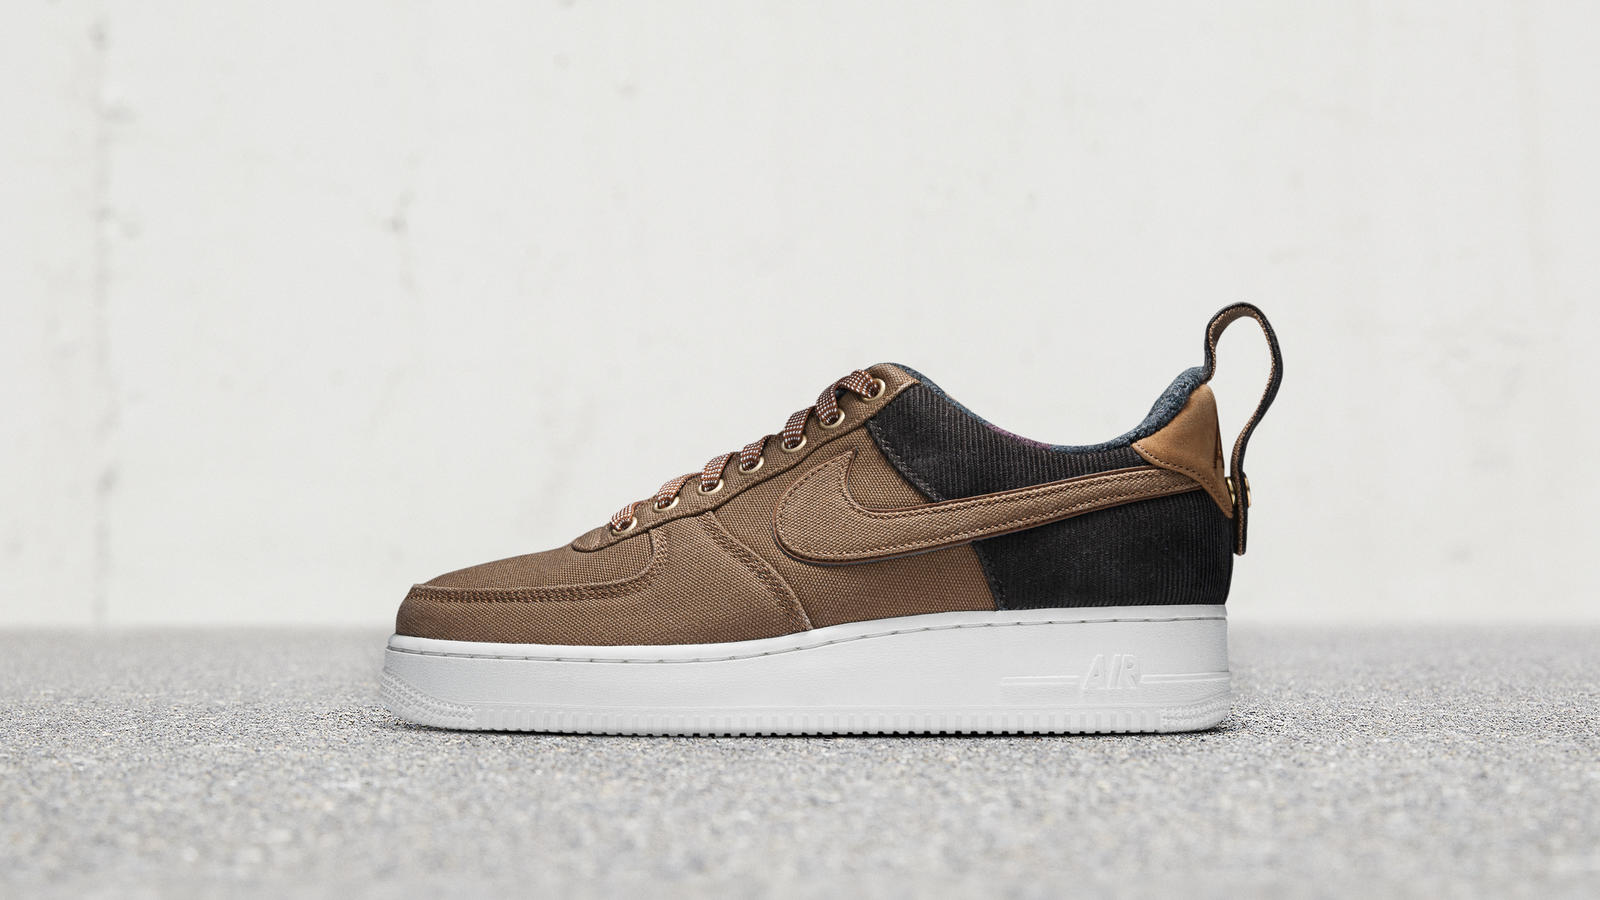 separation shoes c0782 ce05a Nike x Carhartt Air Force 1 Low, Vandal Supreme High, Air ...